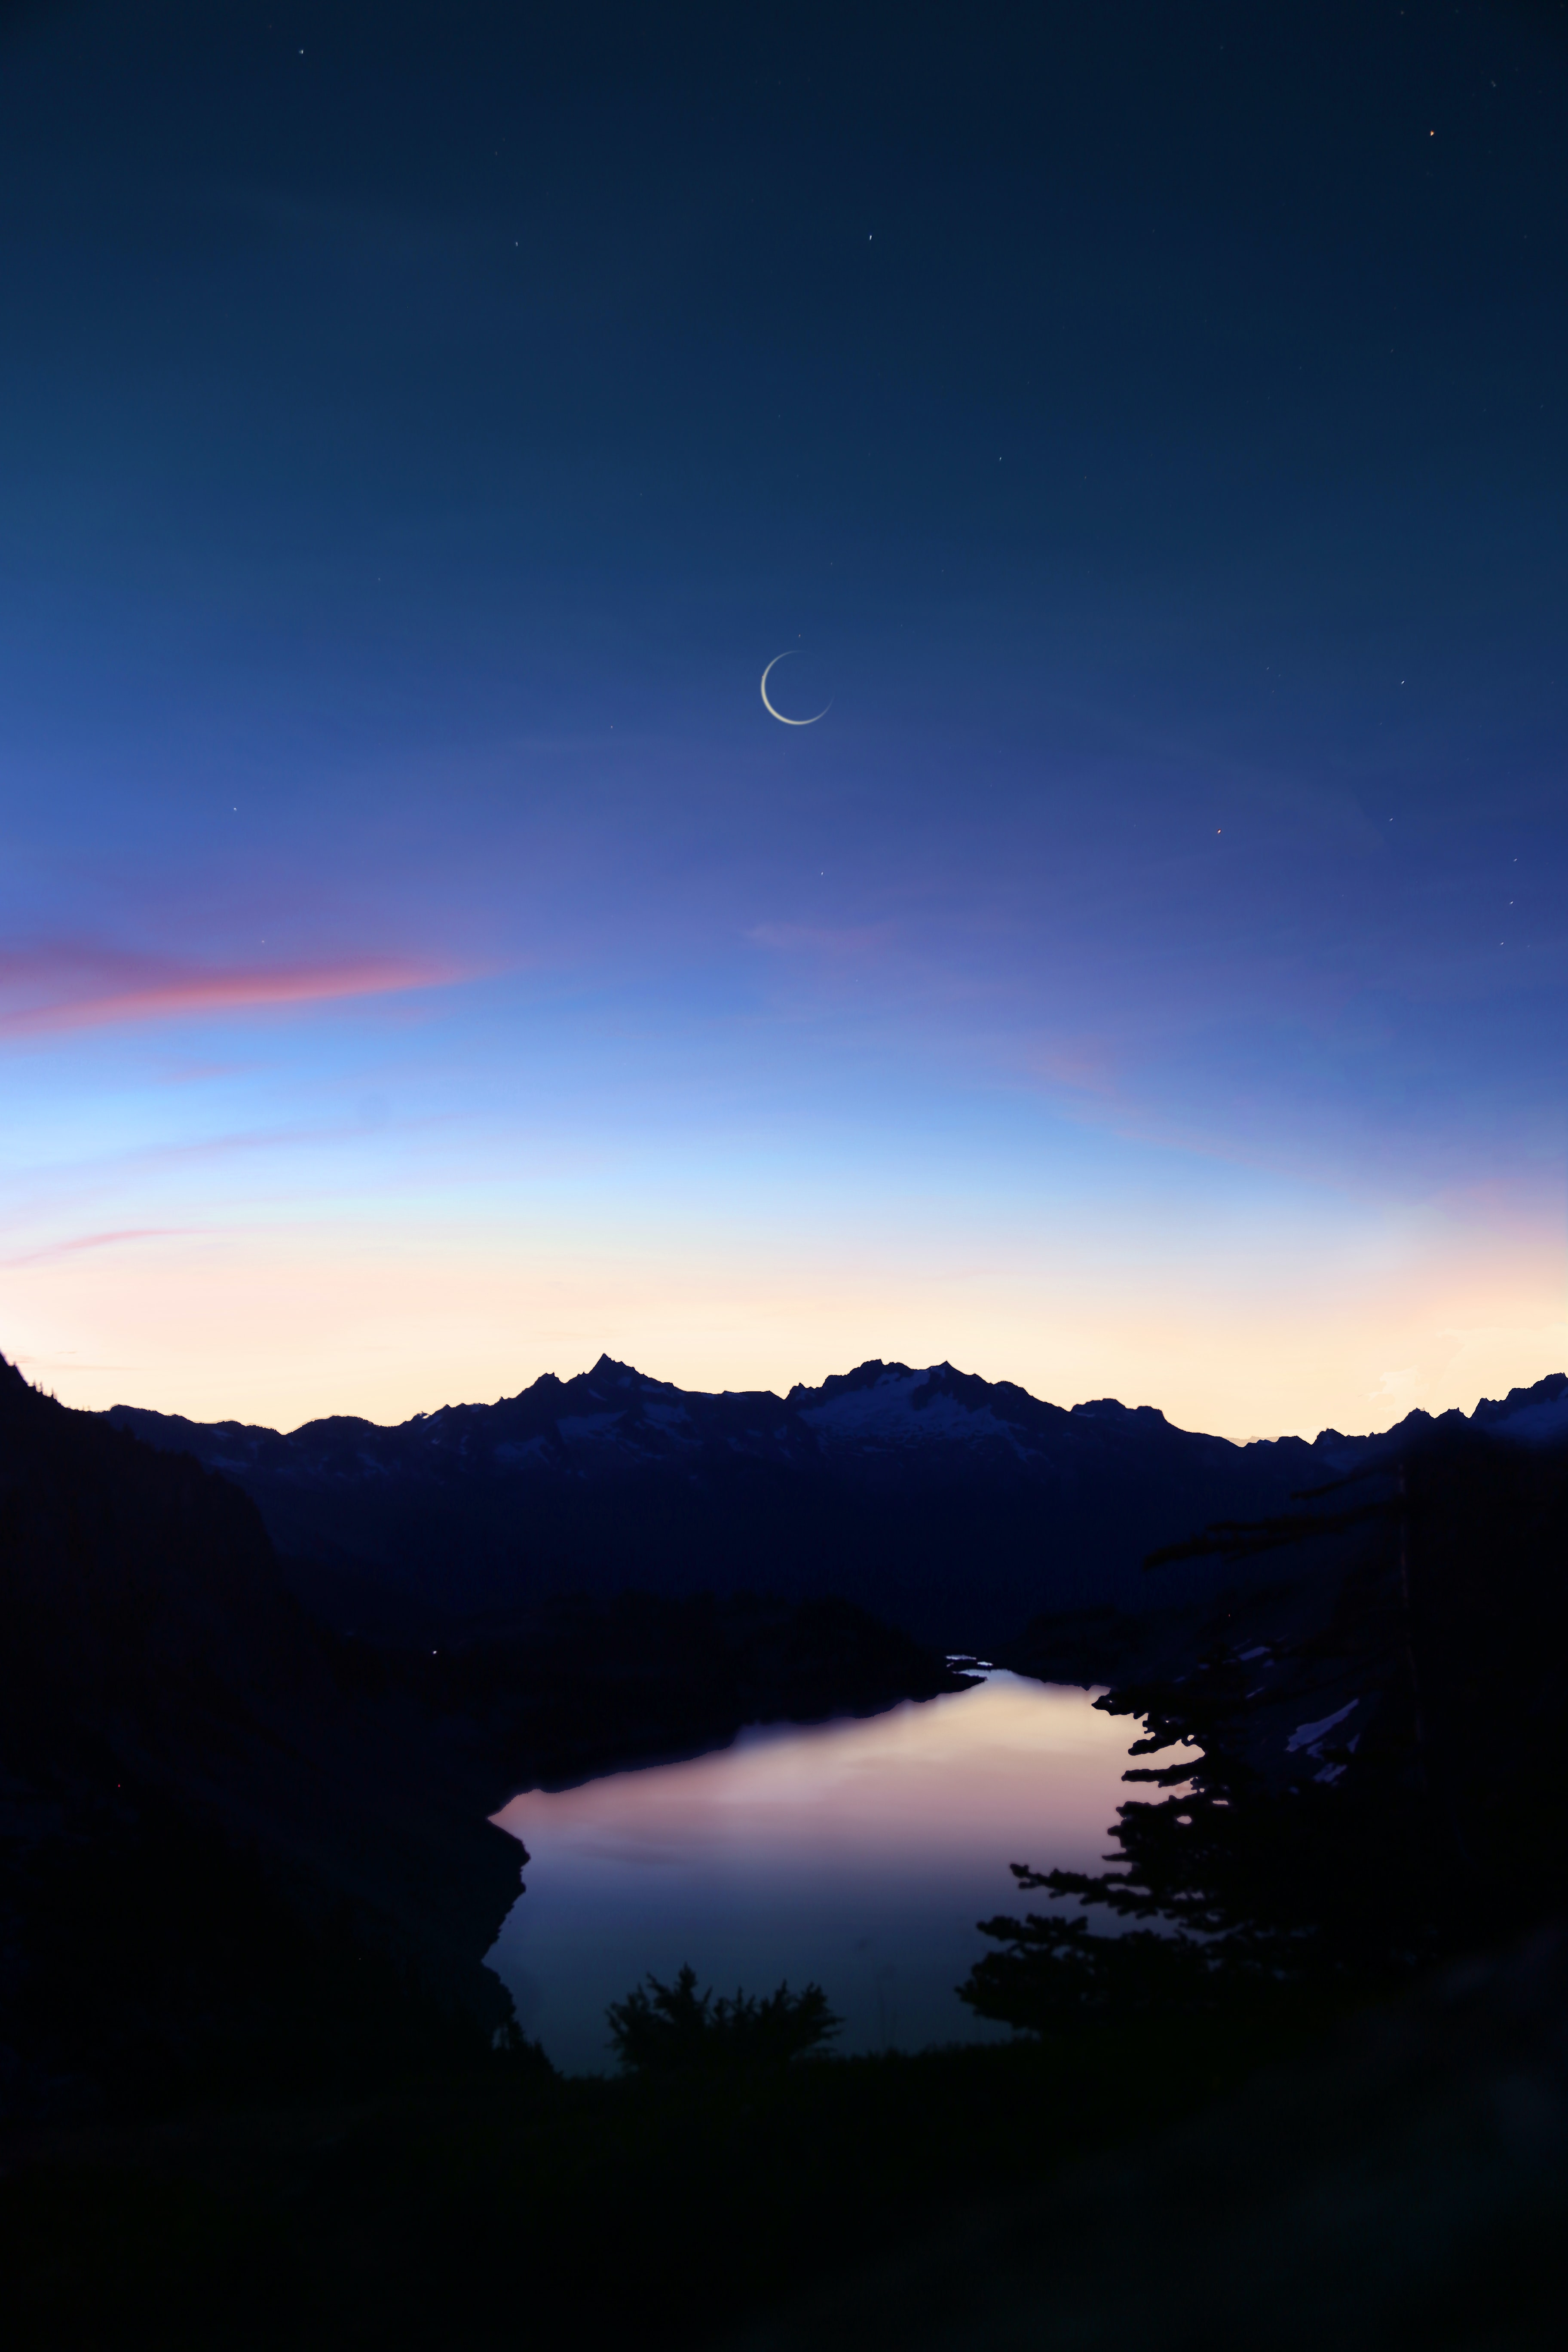 birds eye-view of lake under crescent moon